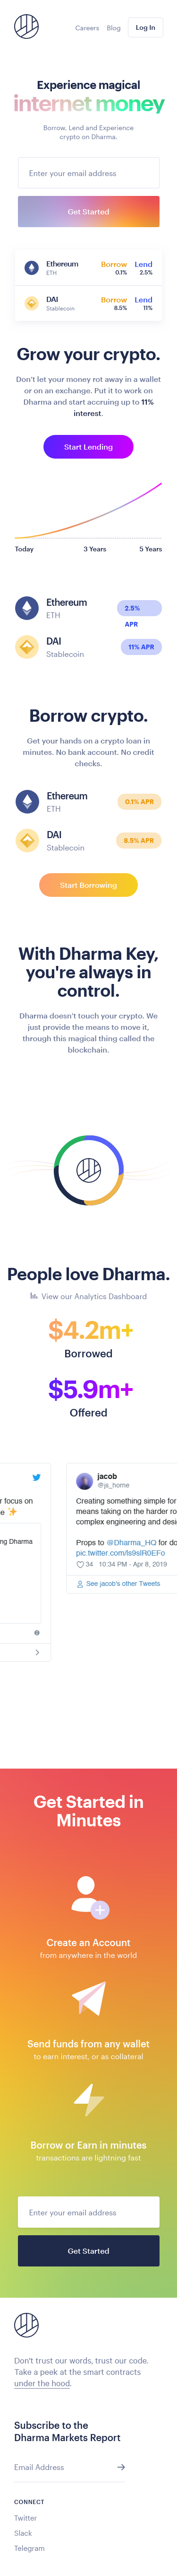 Example of Design for Finance, Banking, Mobile Landing Page by dharma.io   Mobile Landing Page Design